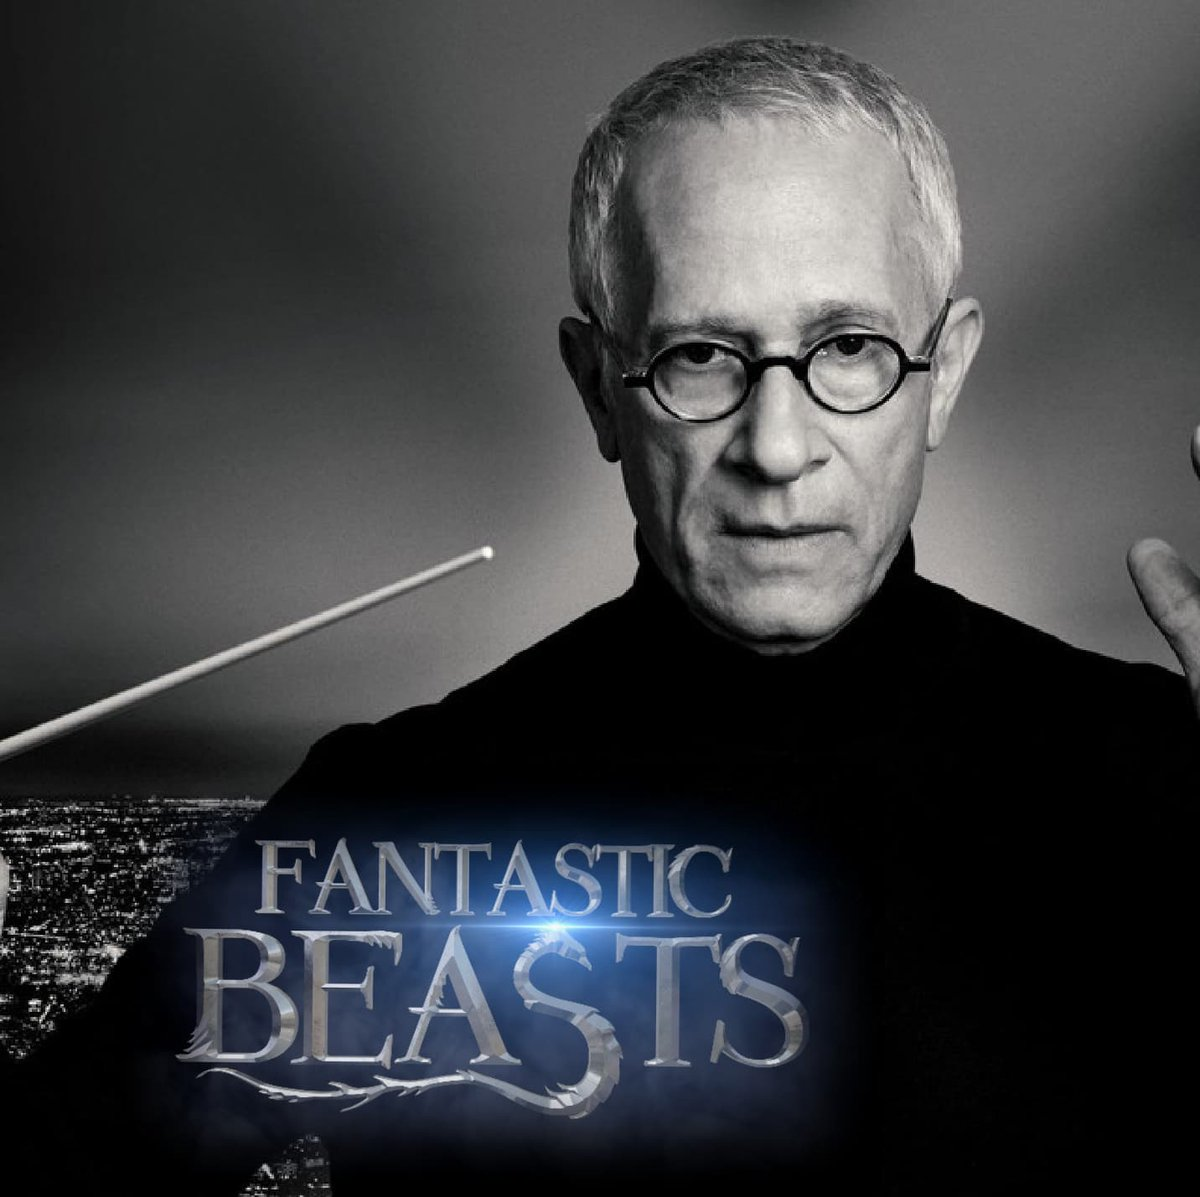 Happy Birthday also to the incredibly talented #FantasticBeasts composer, James Newton Howard! Thanks for bringing musical magic back to the wizarding world!